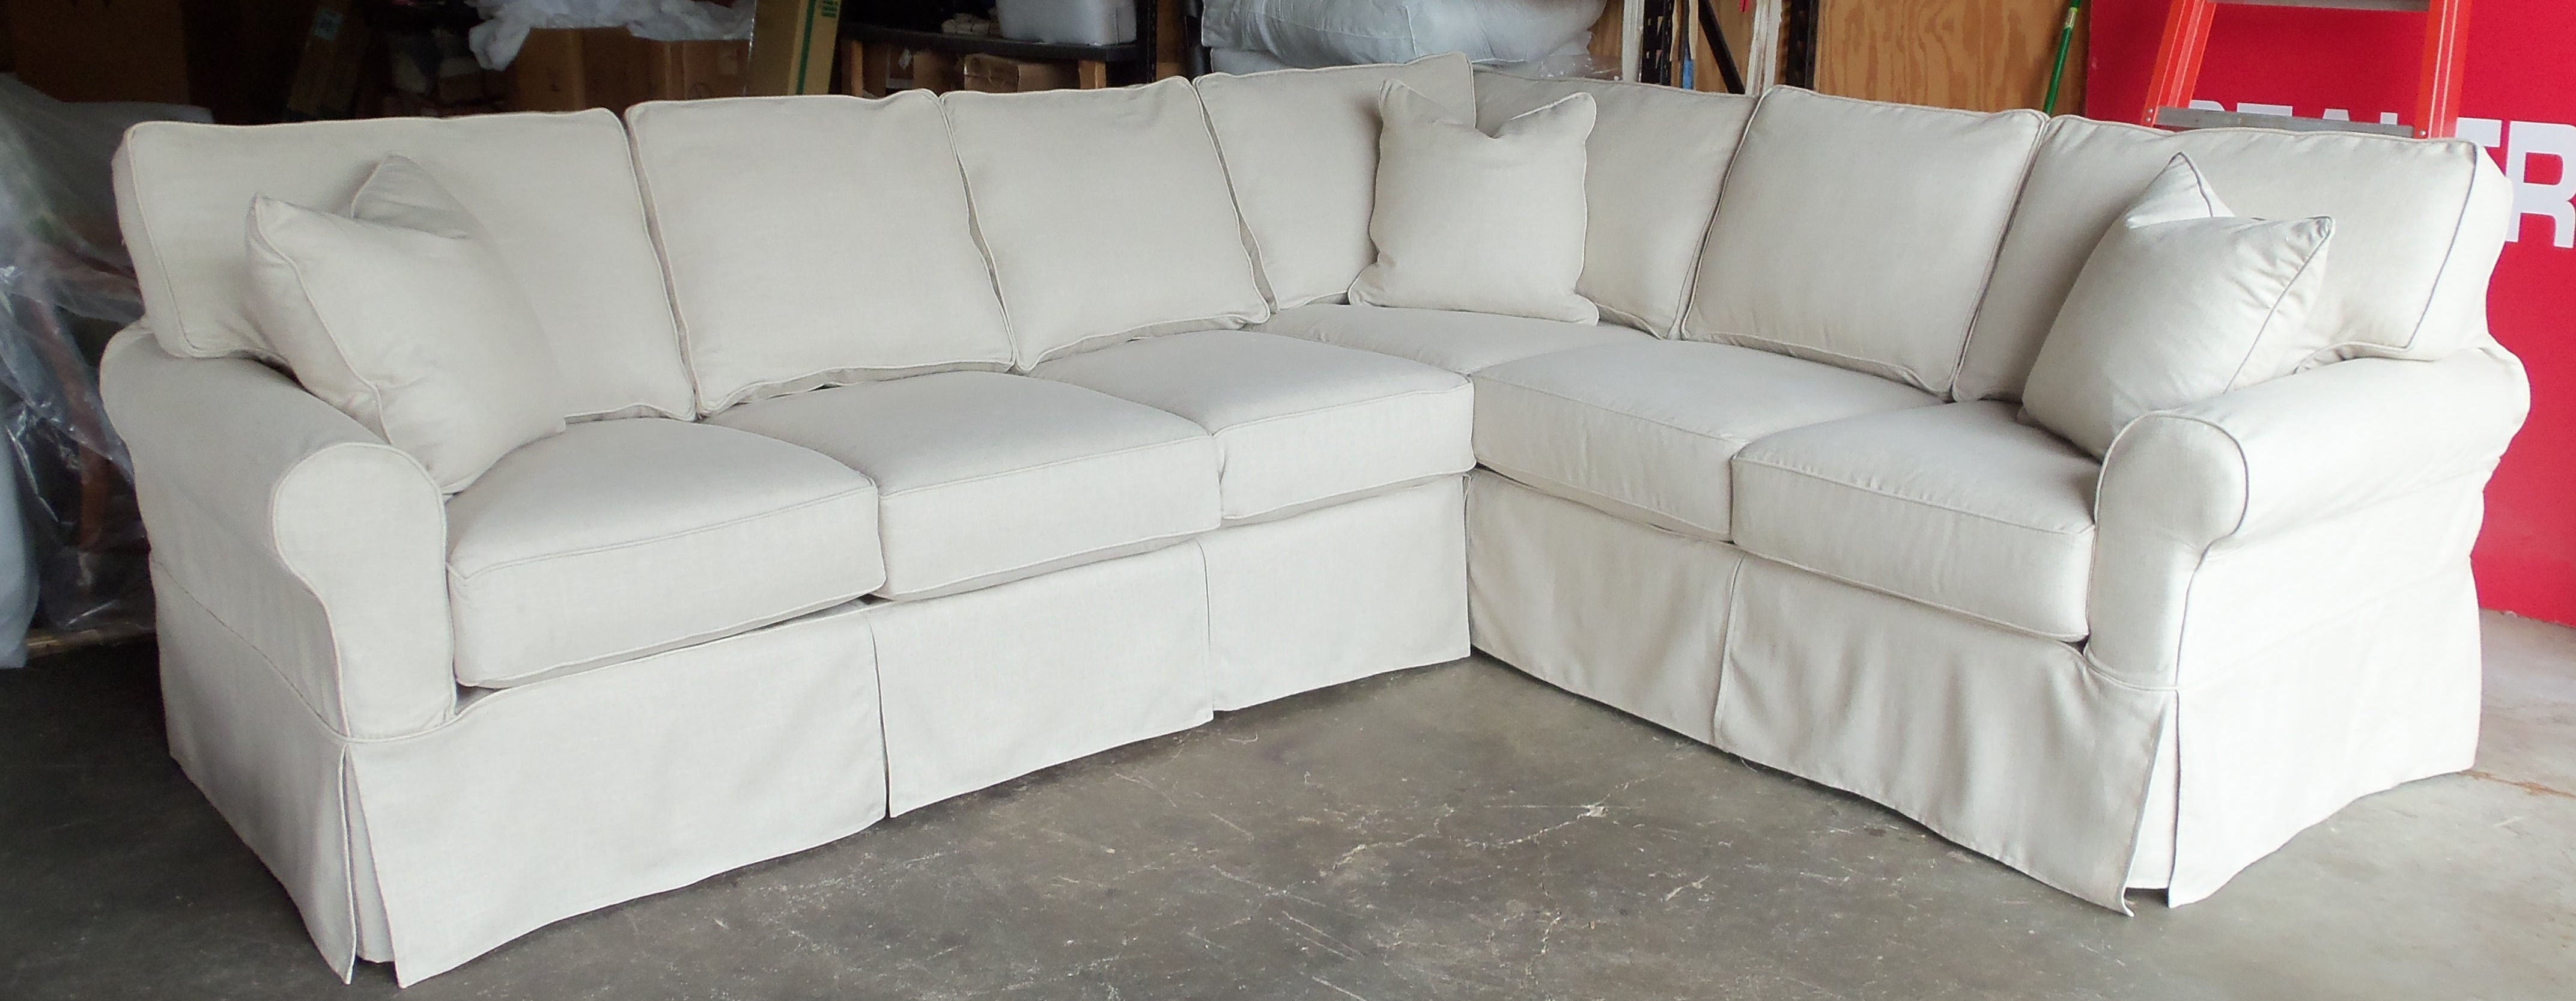 Sectional Sofa Design: Most Comfortable Slipcover Sectional Sofas Intended For Sectional Sofas With Covers (View 12 of 15)